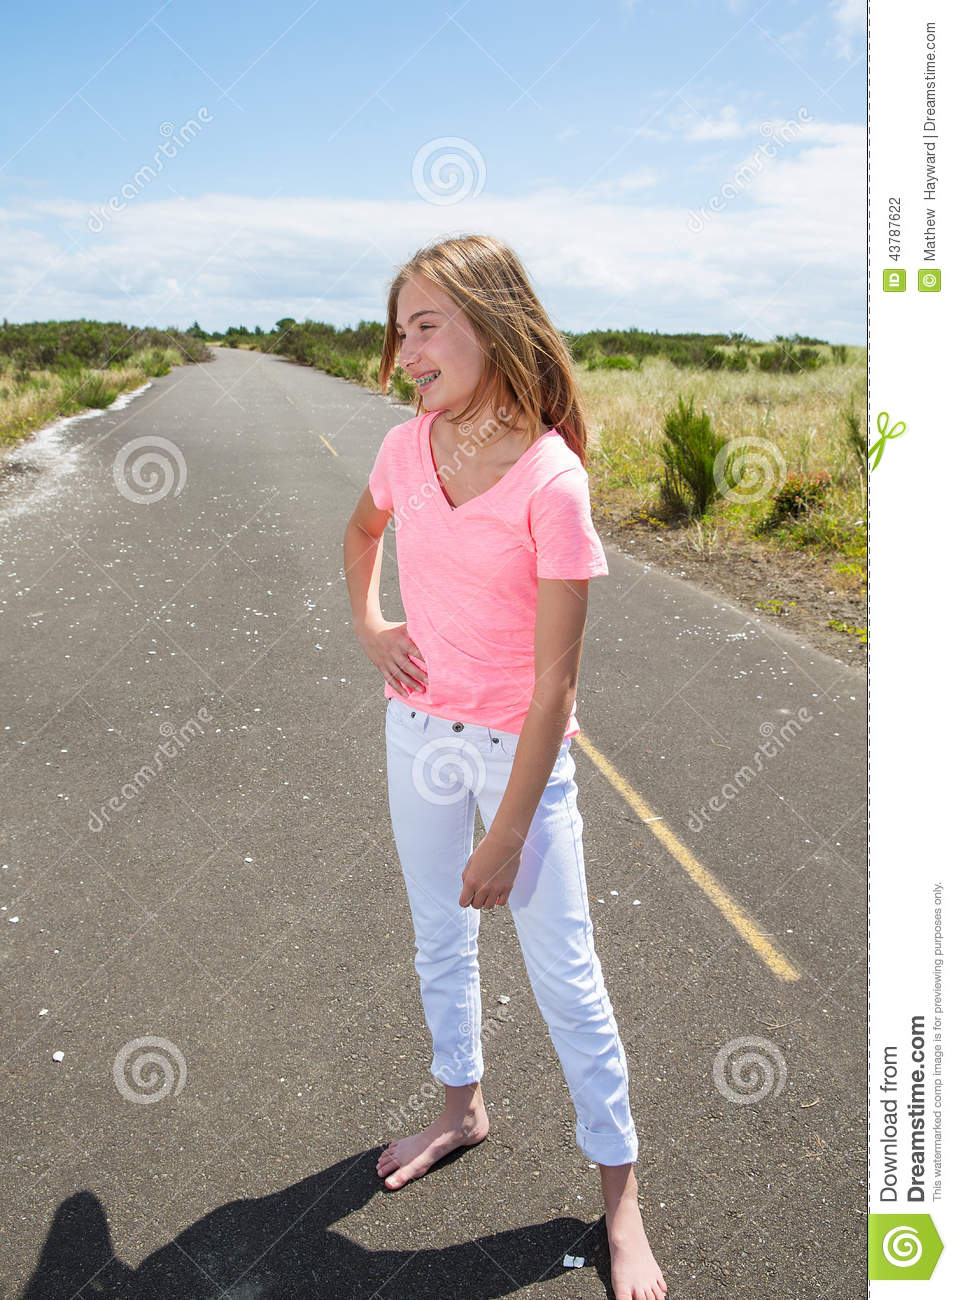 https://thumbs.dreamstime.com/z/teenage-girl-travels-barefoot-empty-road-pretty-teen-walking-country-bare-feet-43787622.jpg